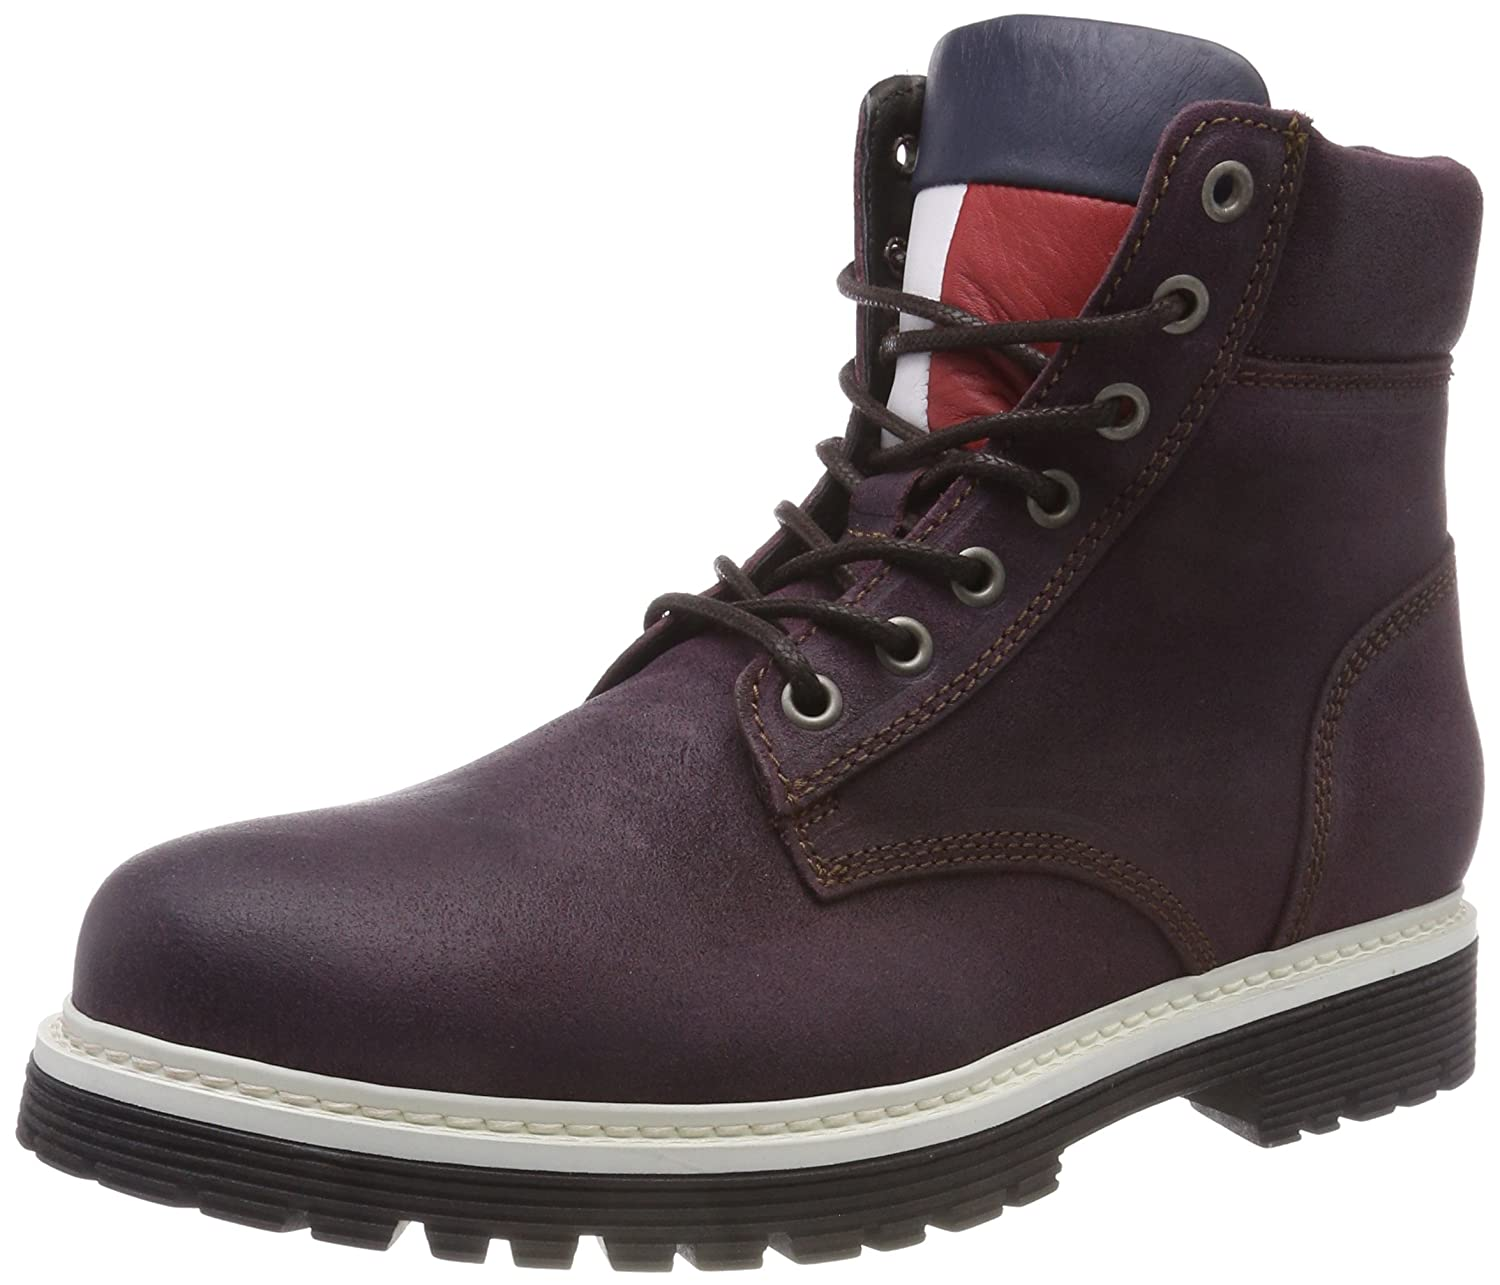 TALLA 41 EU. Tommy Jeans Iconic Suede Boot, Botas Militar para Hombre